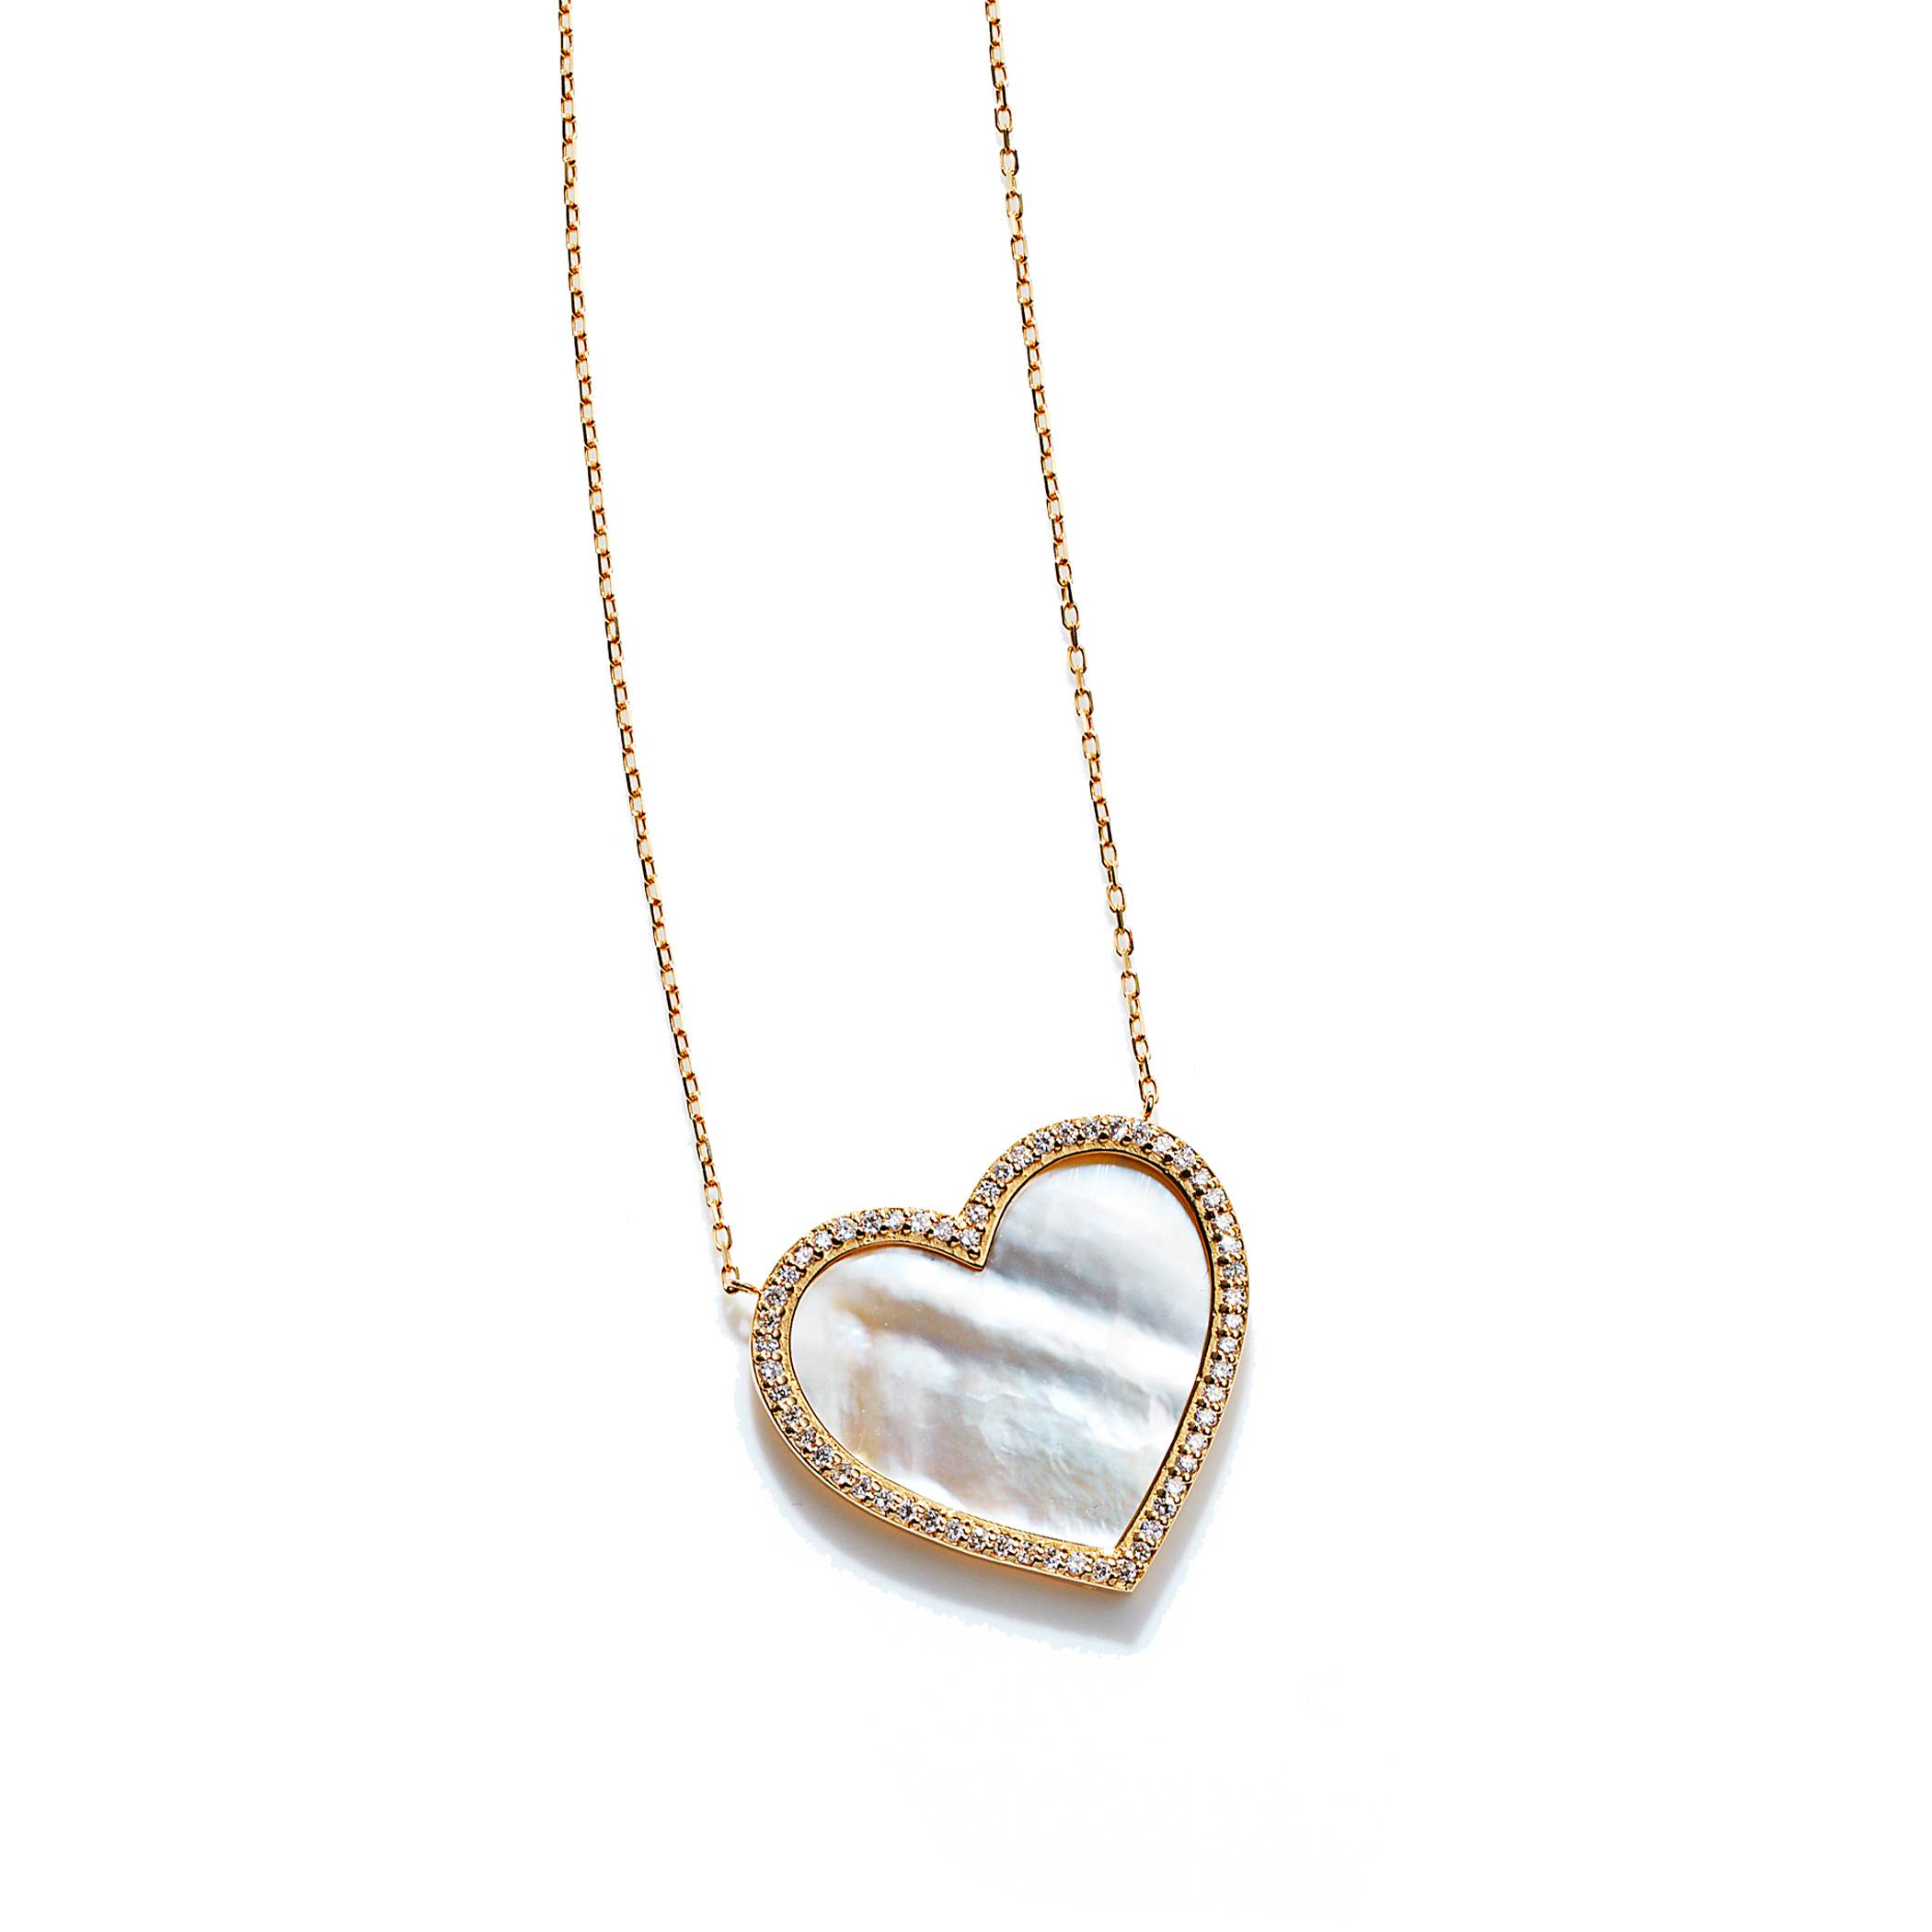 Magic hour necklace 詳細画像 White 1